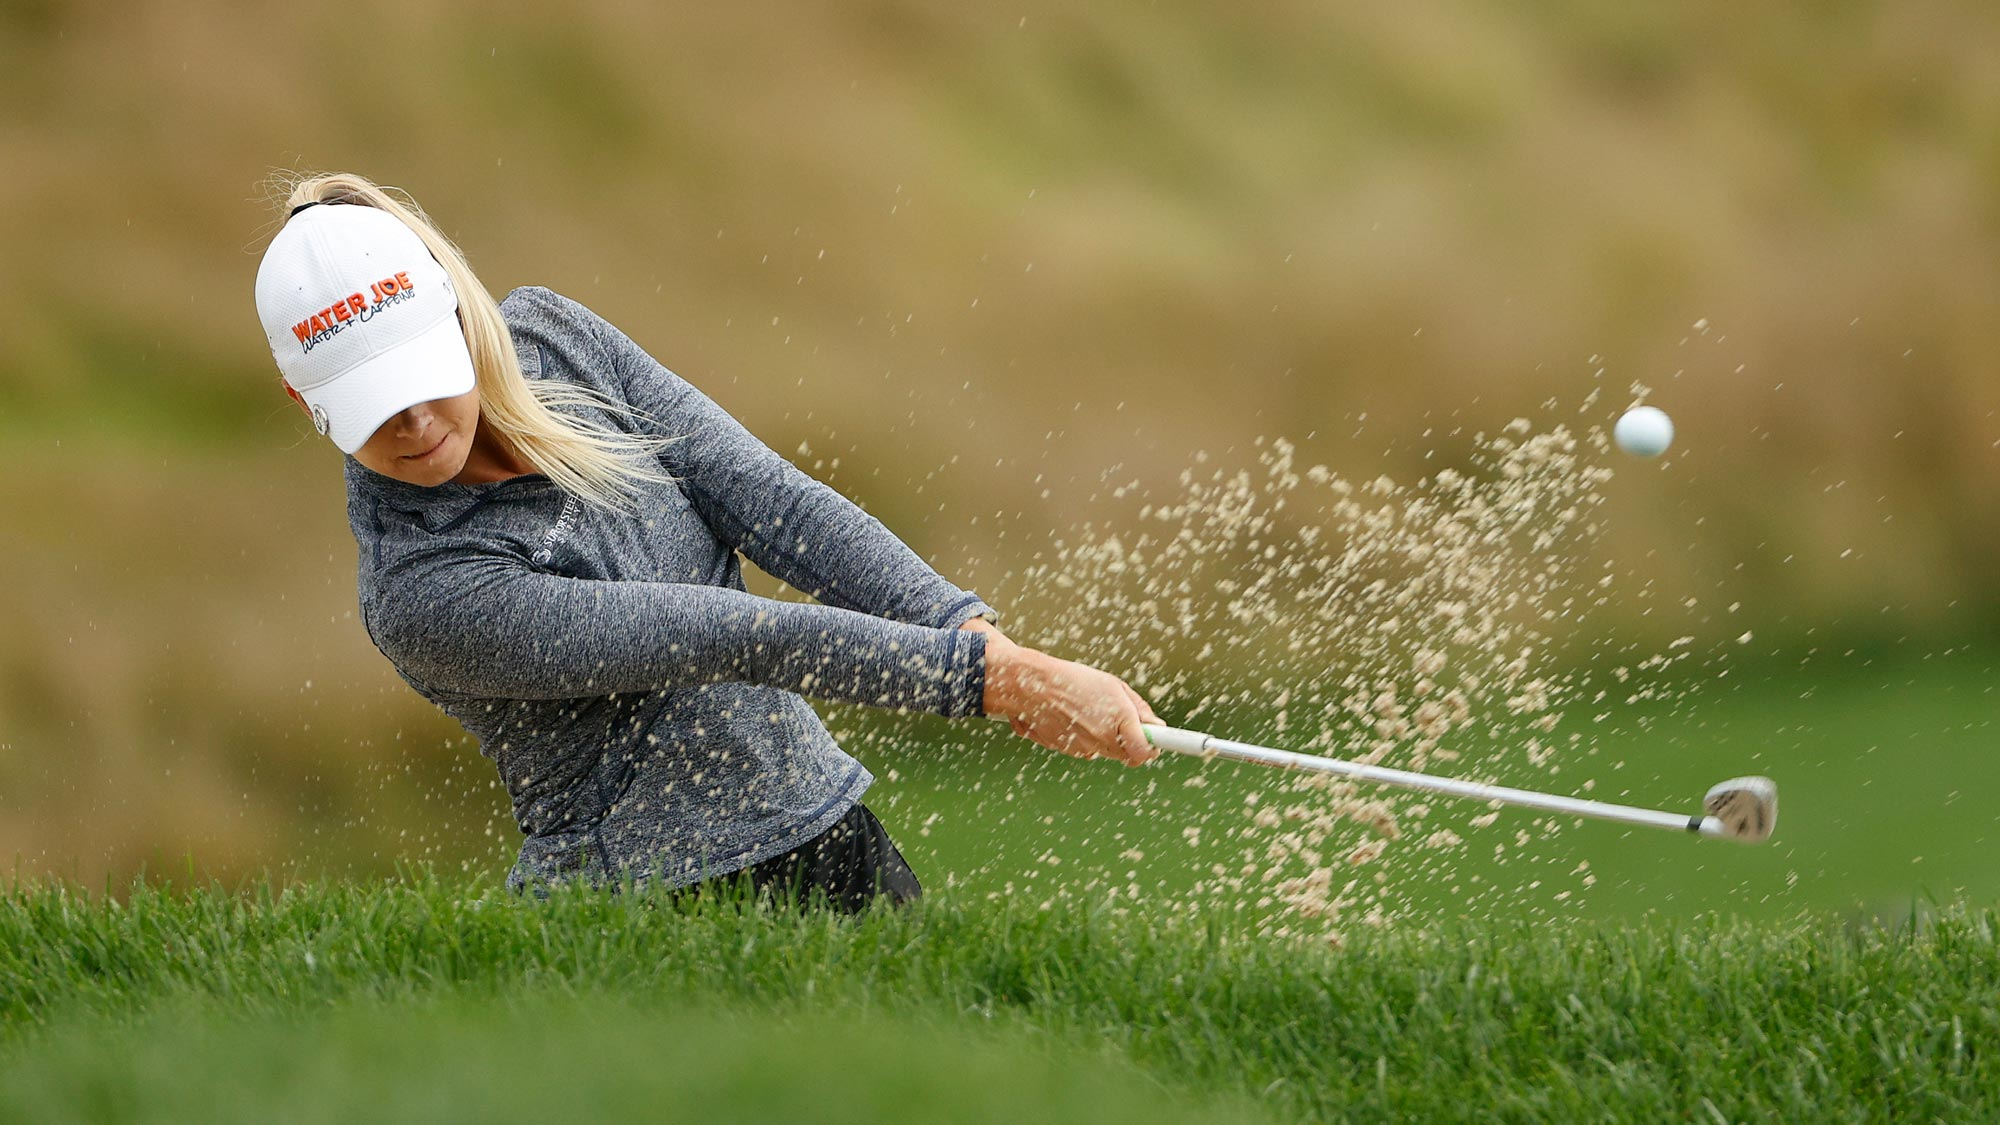 Sarah Burnham plays a shot from a bunker on the 12th hole during the final round of the LPGA Drive On Championship